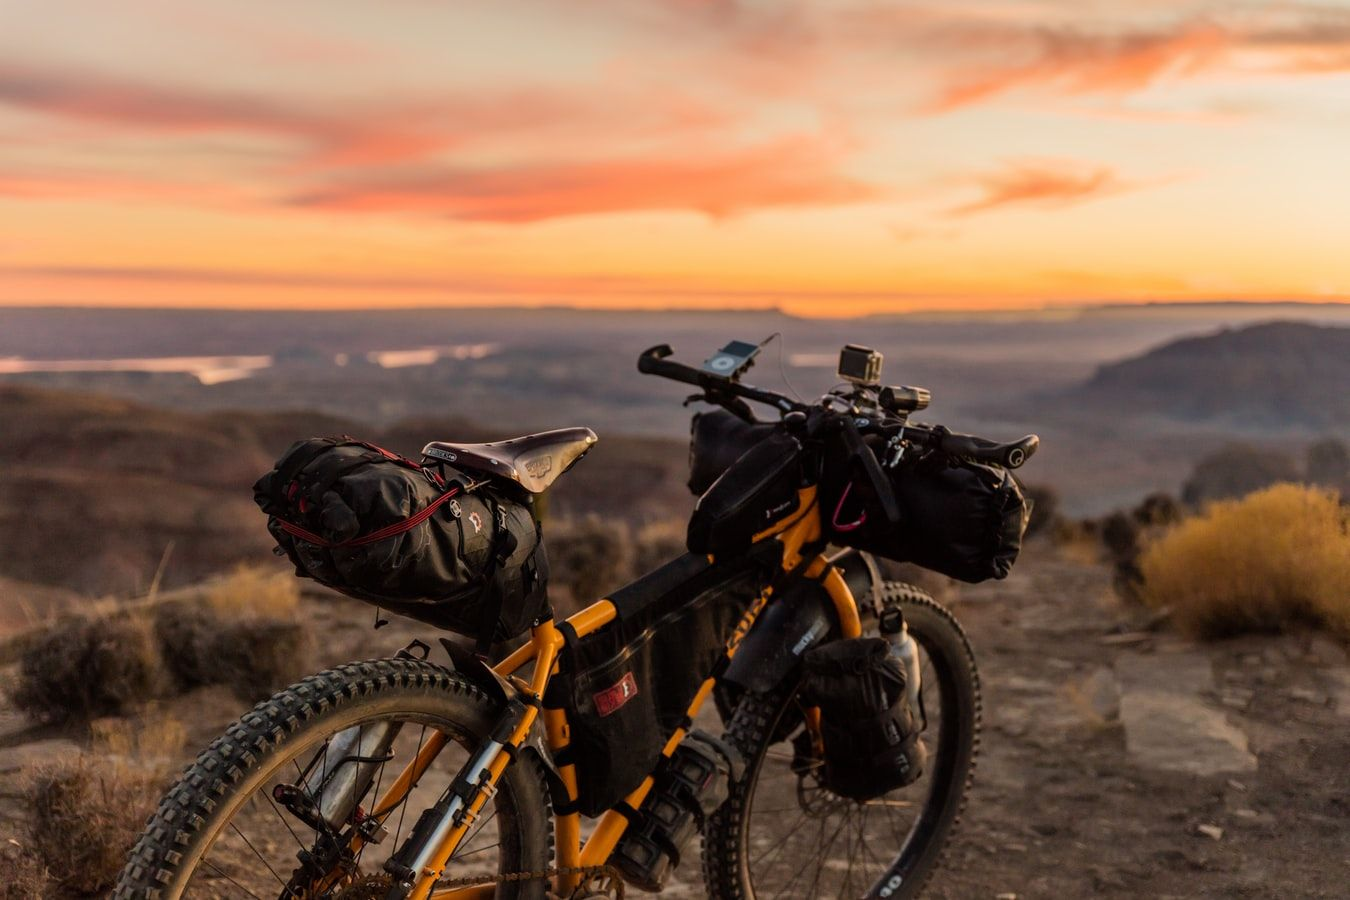 Bikepacking bicycle